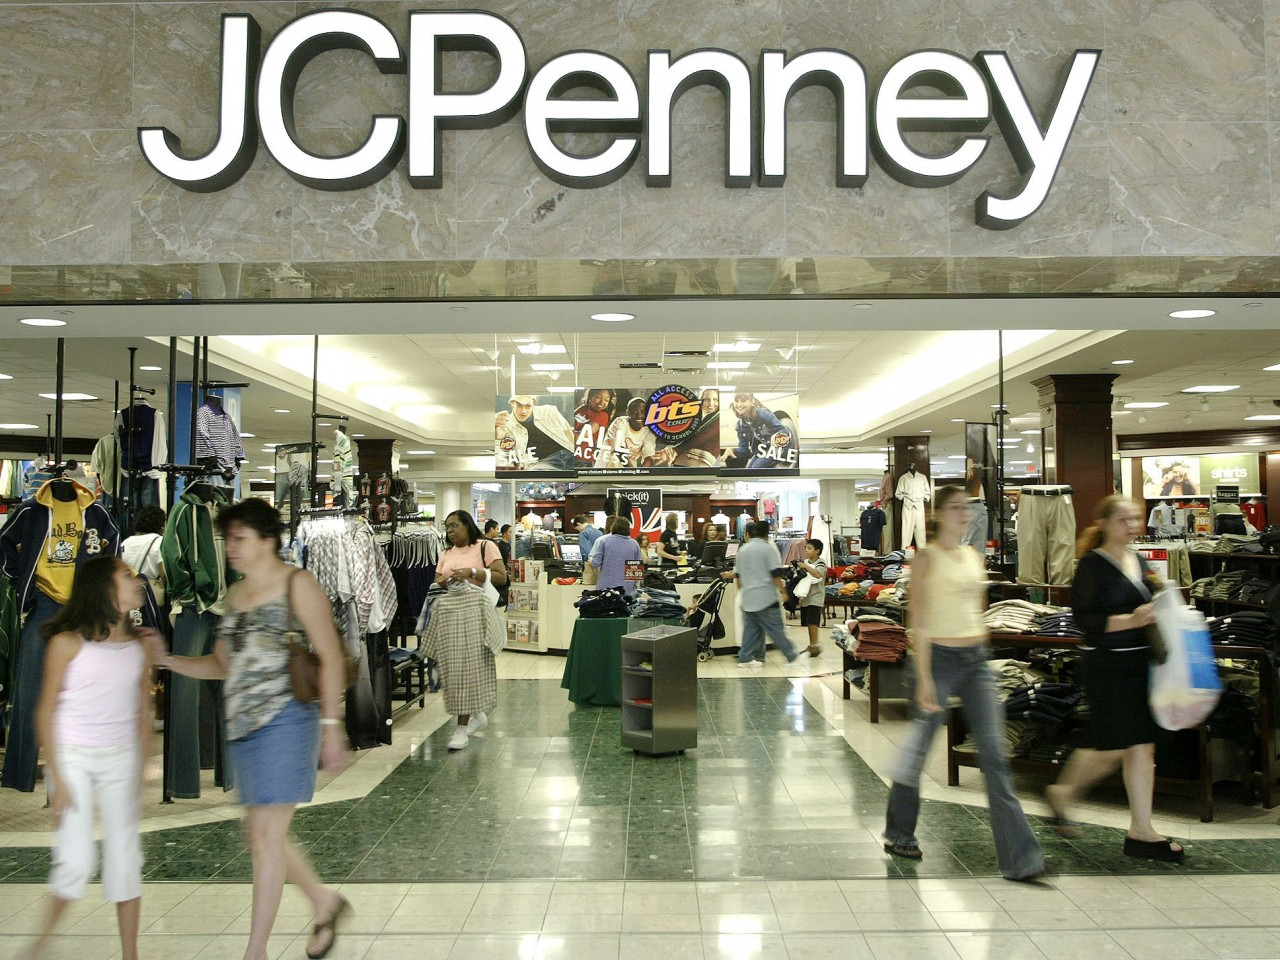 Http Galleryhip Com Jcpenney Store 2013 Html